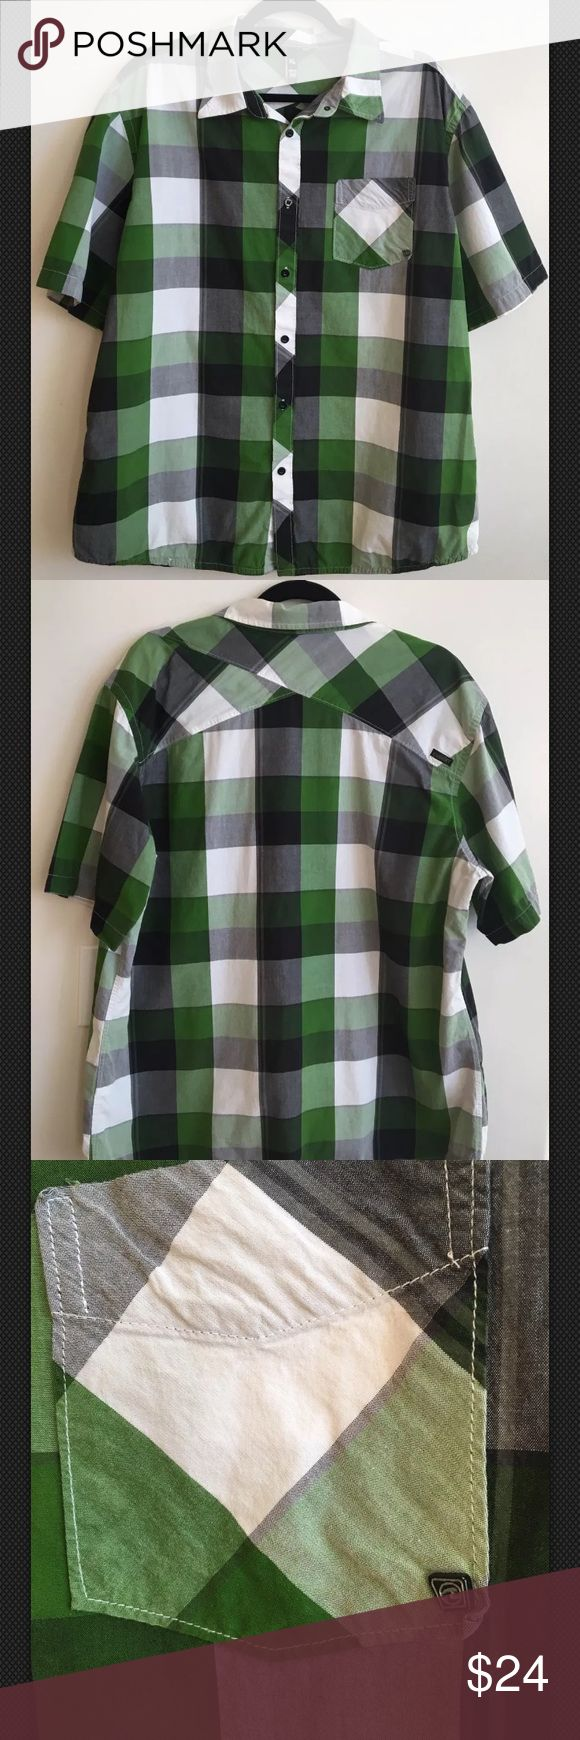 """Ocean Current Men's Short Sleeve Dress Shirt Sz XL Ocean Current Men's Button Down Short Sleeve shirt. Plaid Black and Green color.  ▪️Size XL ▪️Measurement approximately (laying-flat) Pit to pit 24 1/2 Length 30"""" inches ▪️Very good Condition. No rips, holes or stains. ▪️Coming from a Smoke-free and Pet-free home. Ocean Current Shirts Casual Button Down Shirts"""